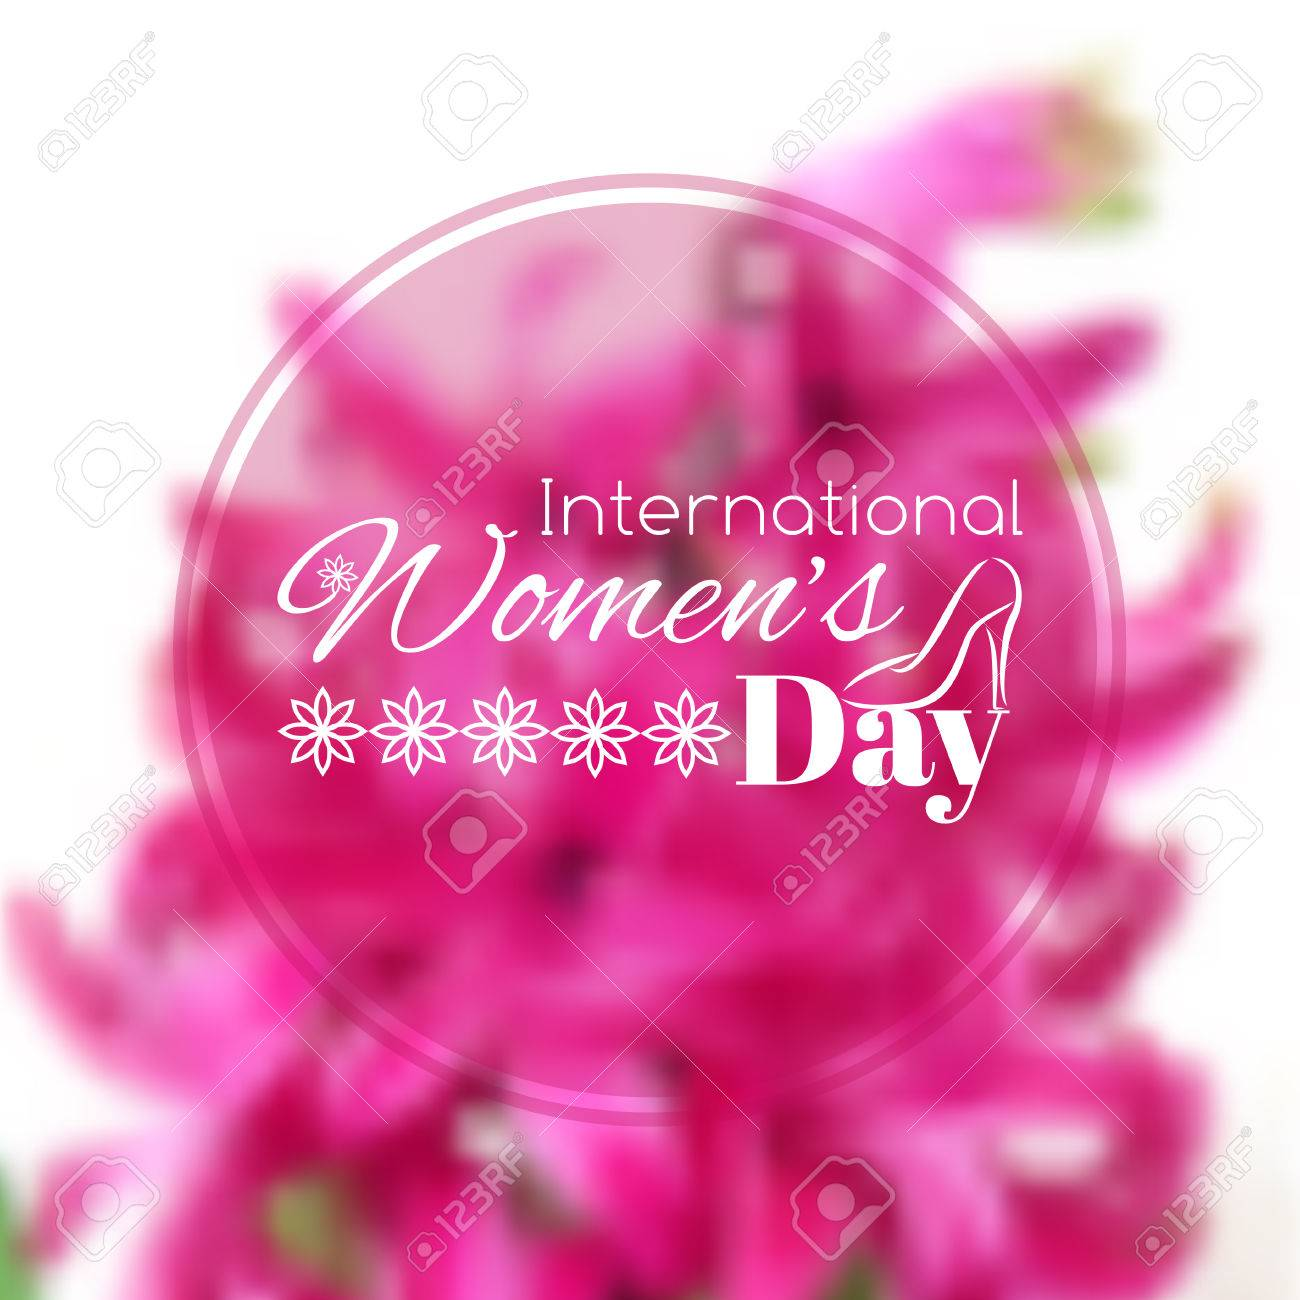 International Womens Day Greeting Card Vector Blurred Background